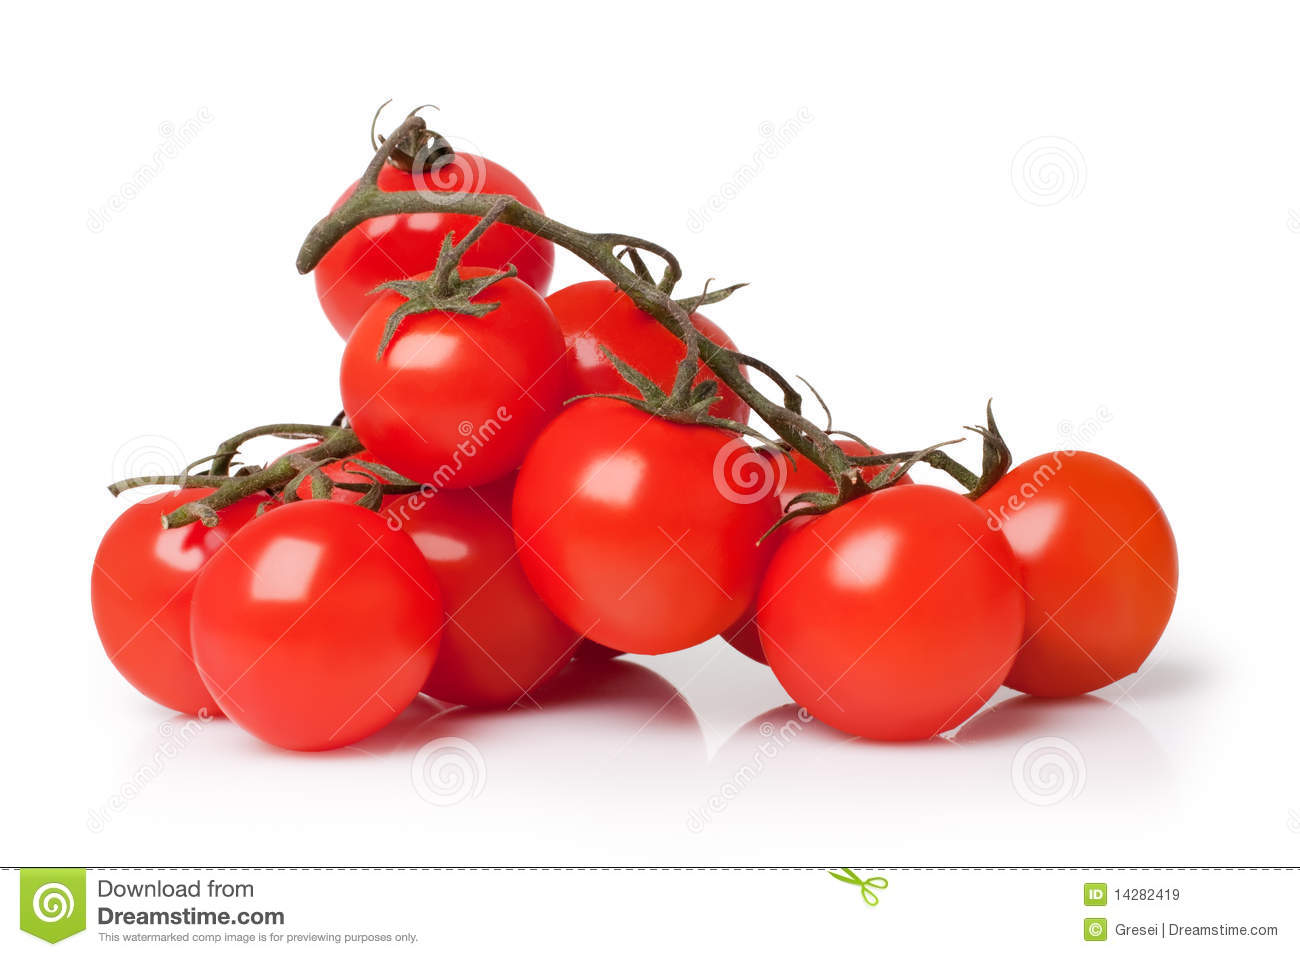 tomato business plan